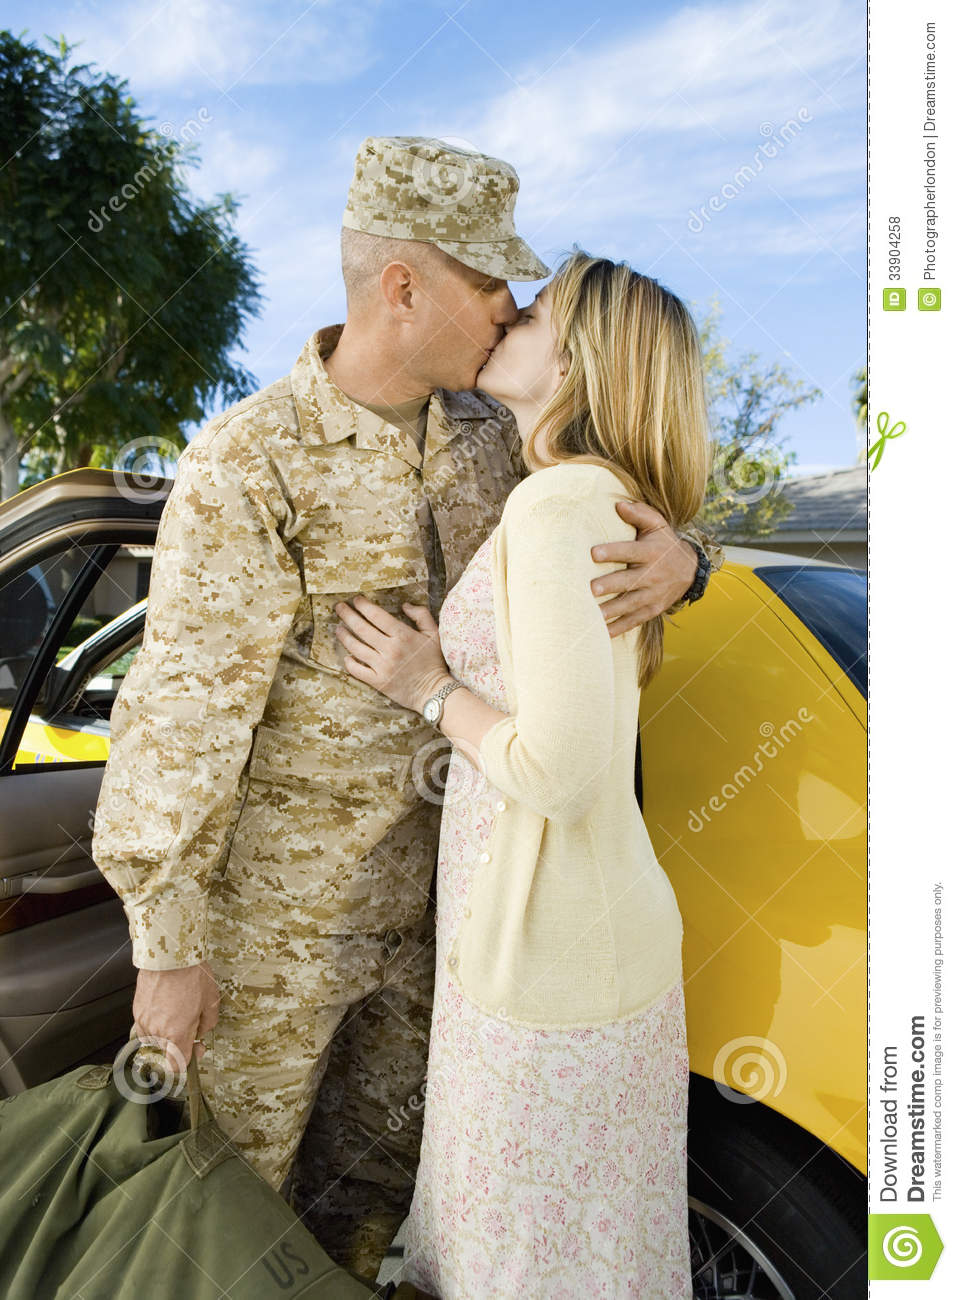 free online dating for soldiers Online romance scam information army cid is warning anyone who is involved in online dating to proceed with caution when corresponding with persons claiming to be us soldiers currently serving in afghanistan or elsewhere.